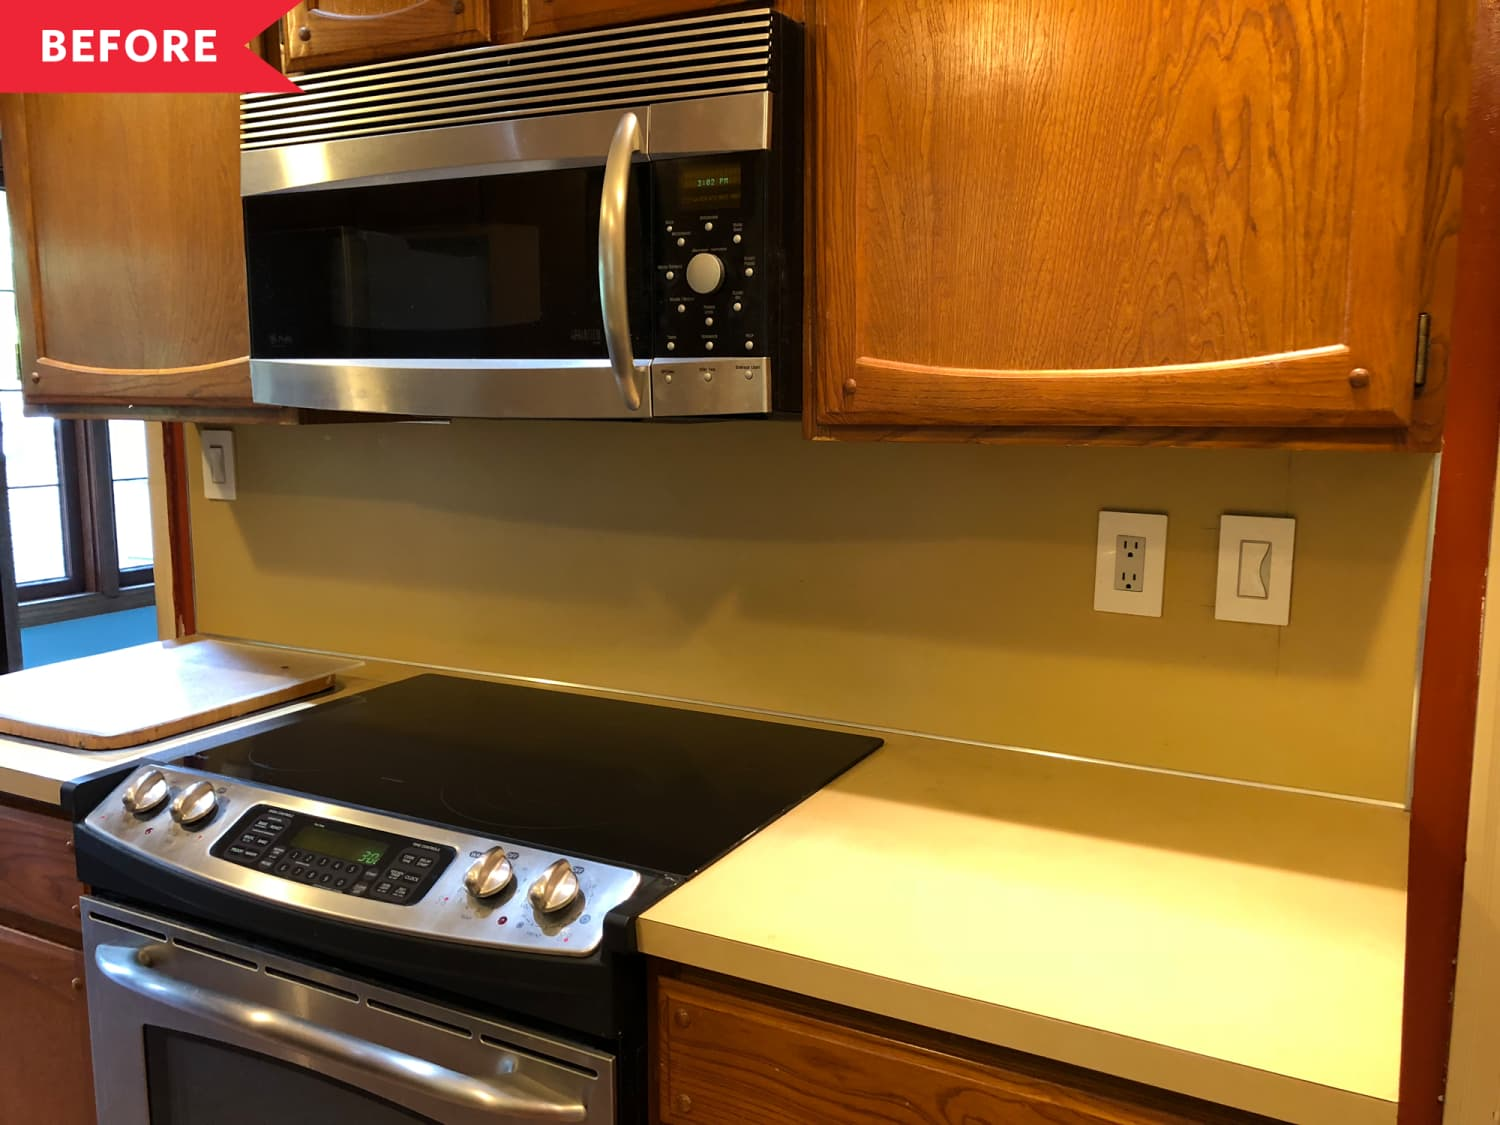 Before & After: Thanks to Smart Budget Ideas, a Dark and Dated Kitchen Is Now Much Improved